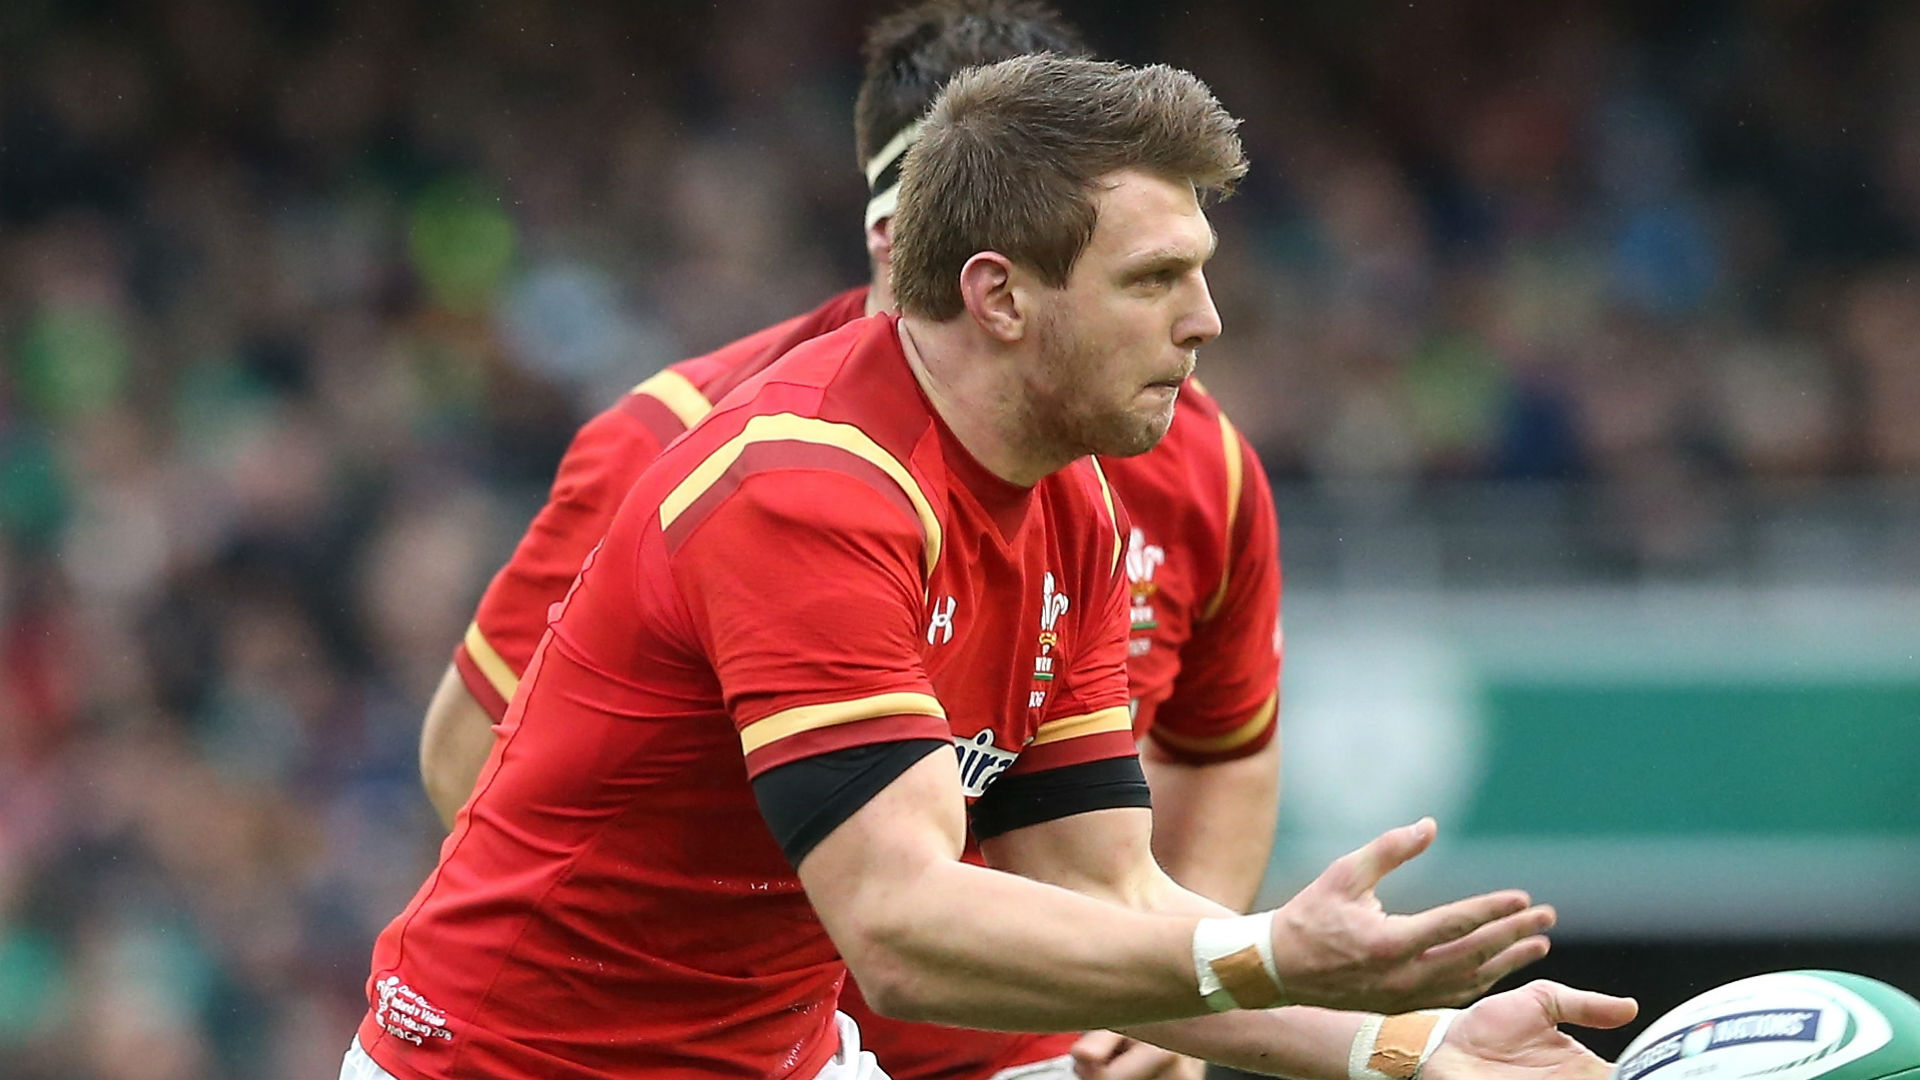 Gatland: We'll target Sexton and Murray